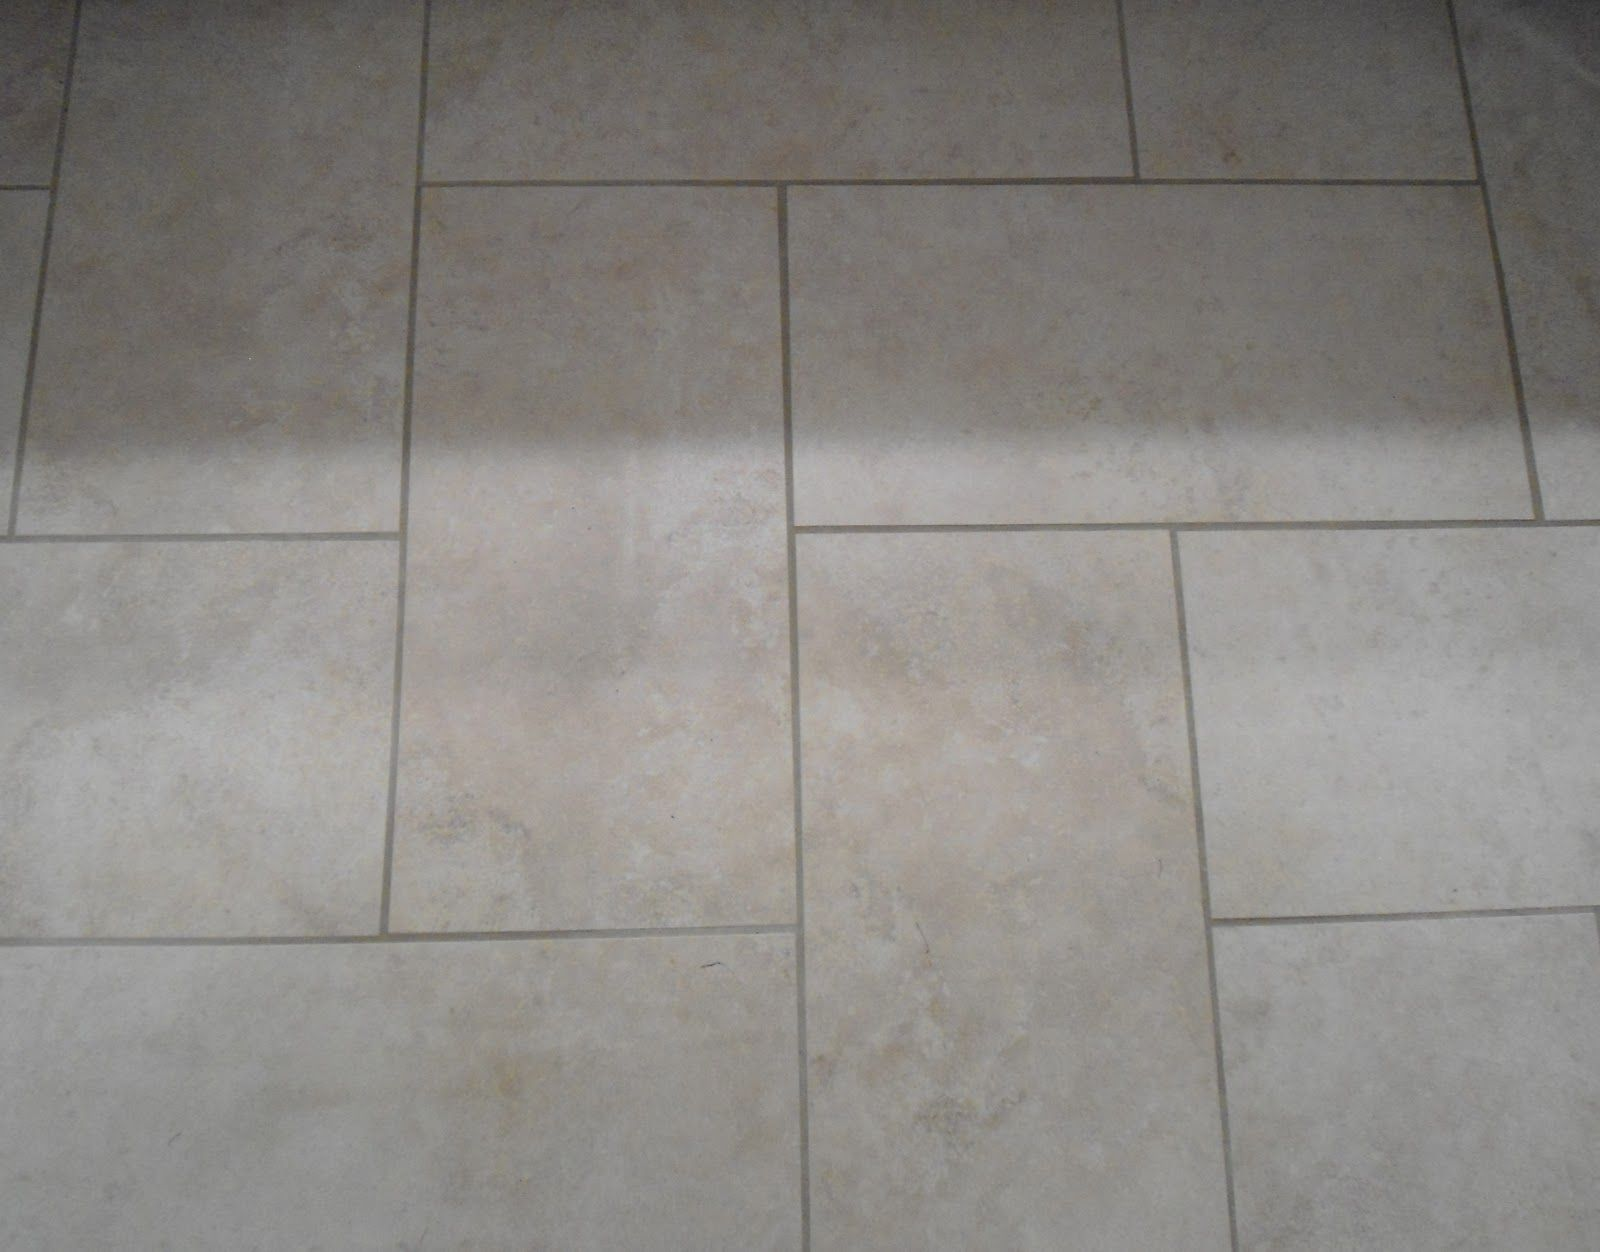 Sandstone Kitchen Floor Tiles Pictures Of Different Tile Patterns 12x 24 Plank Tiles By